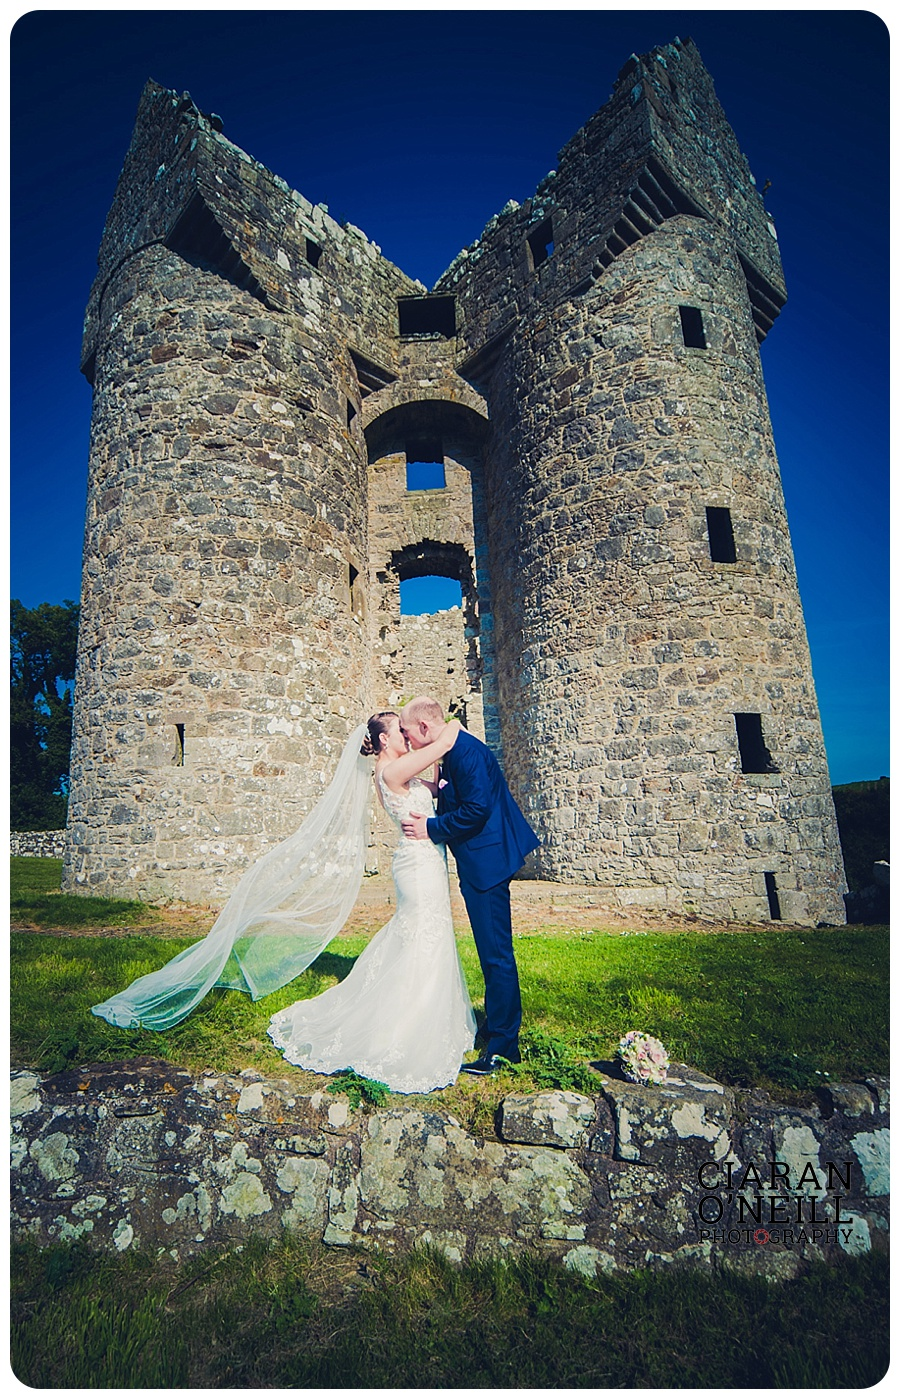 Hannah & Christopher's wedding at Lough Erne Resort & Spa by Ciaran O'Neill Photography 18